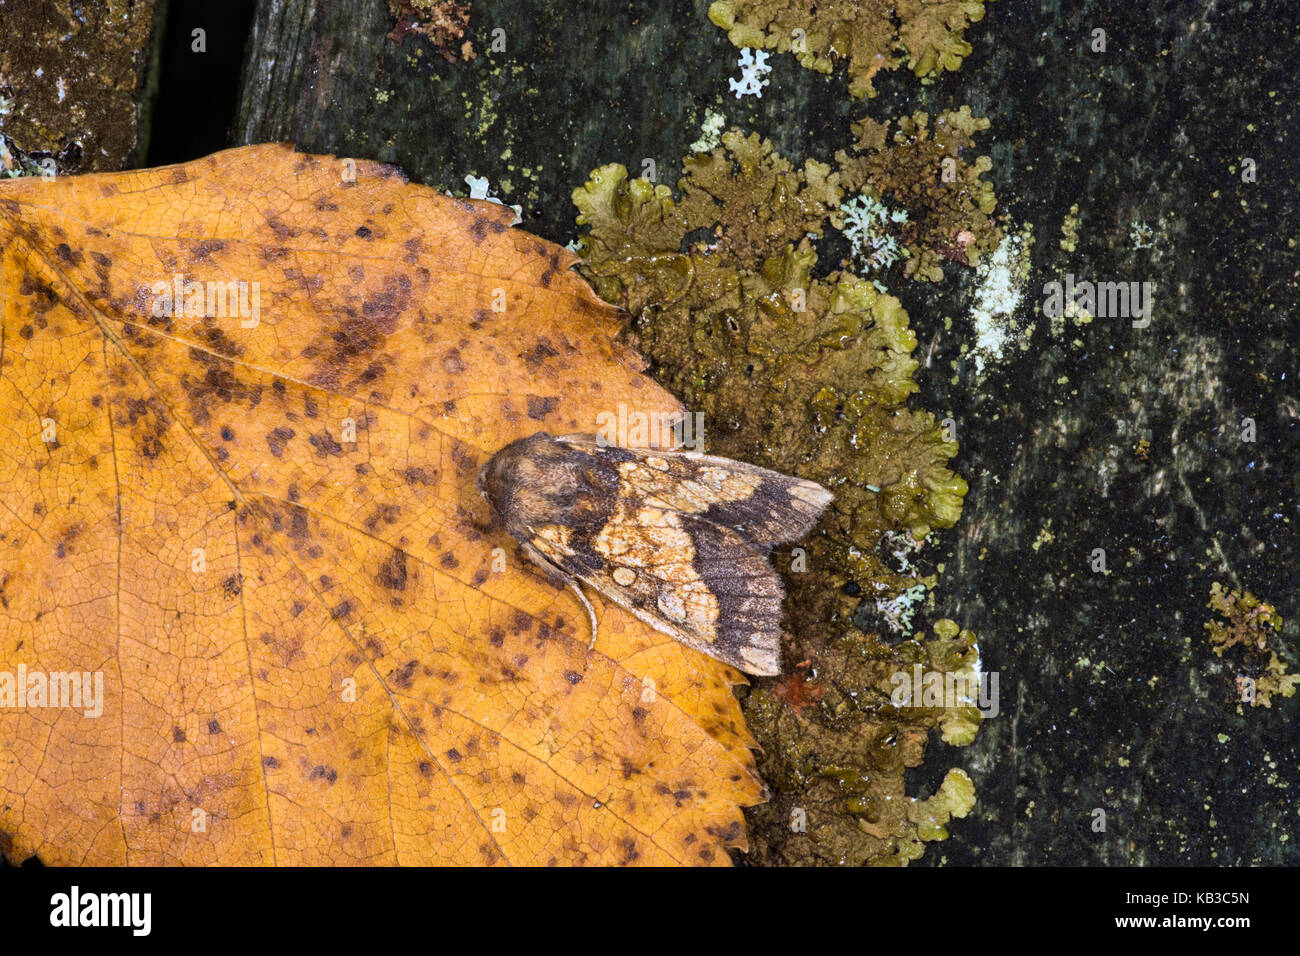 Garden Moth resting after being caught in a Moth Trap. - Stock Image